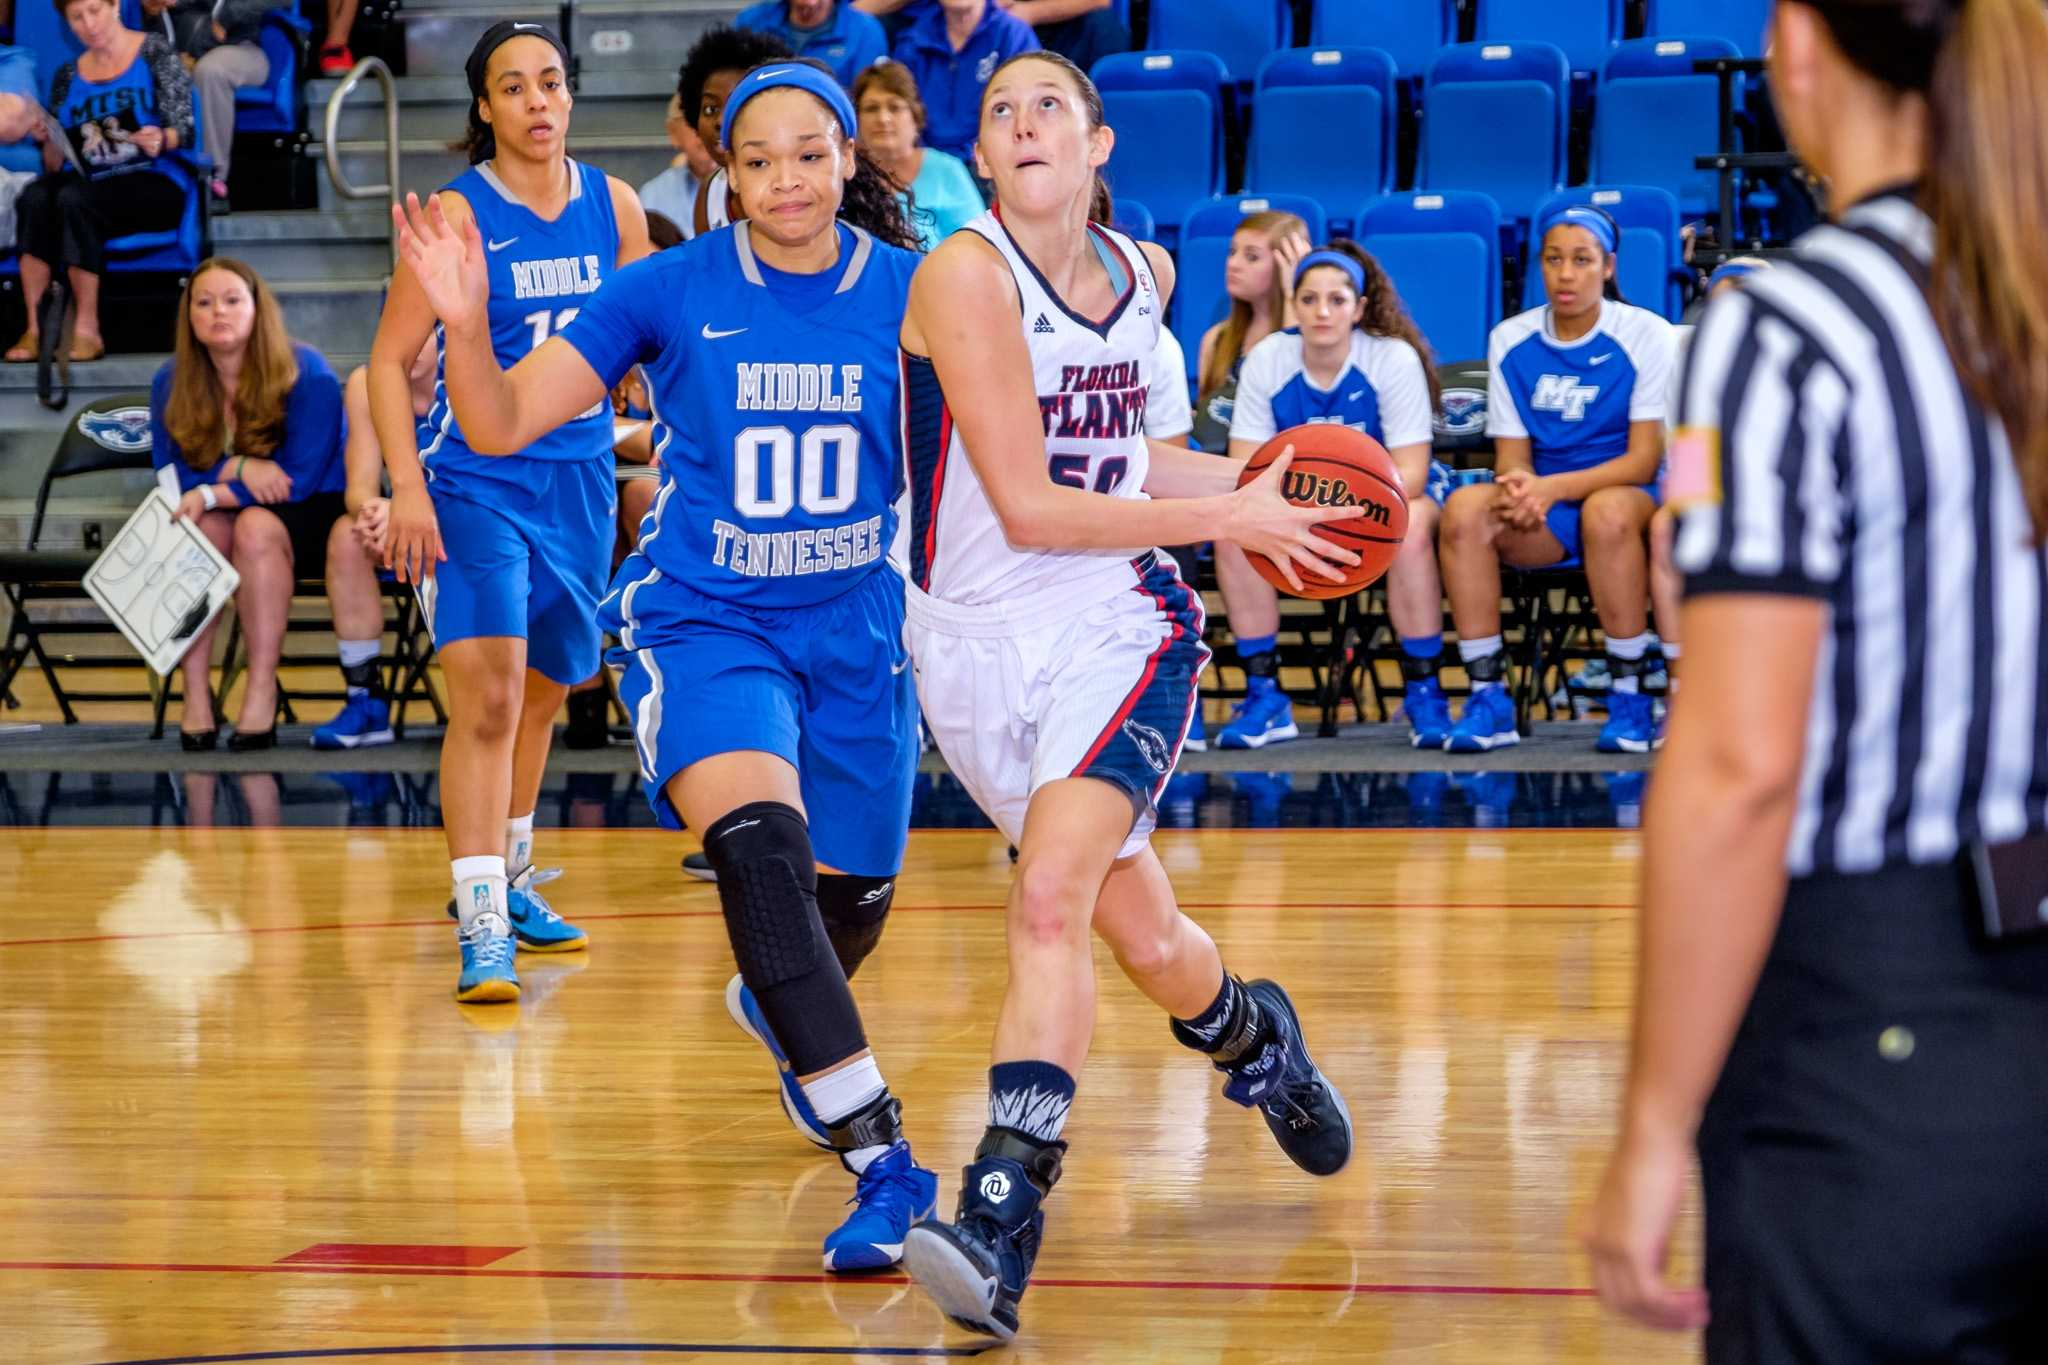 Junior Melinda Myers has helped the Owls become one of the top five rebounding teams in Conference USA. Photo by Mohammed F. Emran